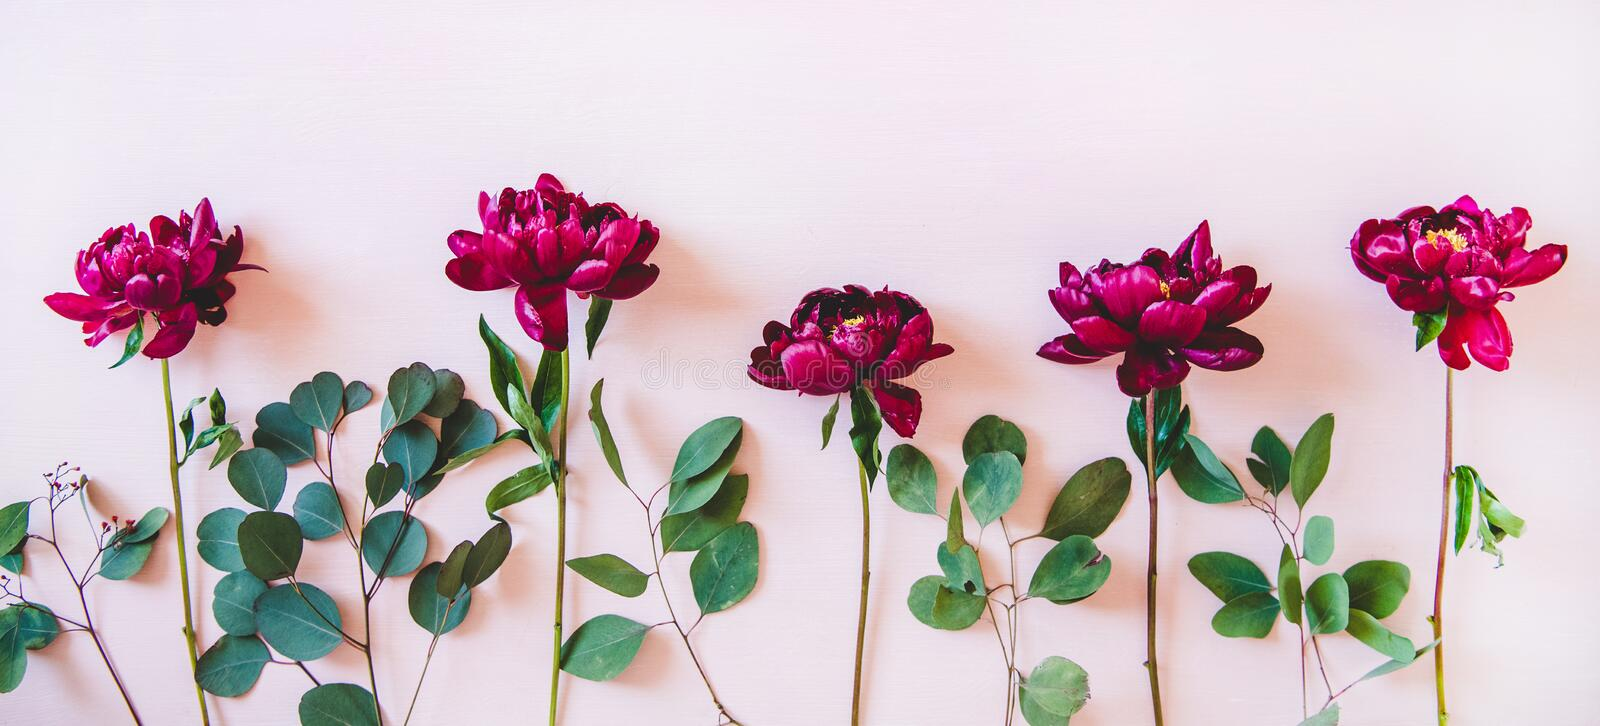 Purple peonies and green branches over pastel background, top view stock photo